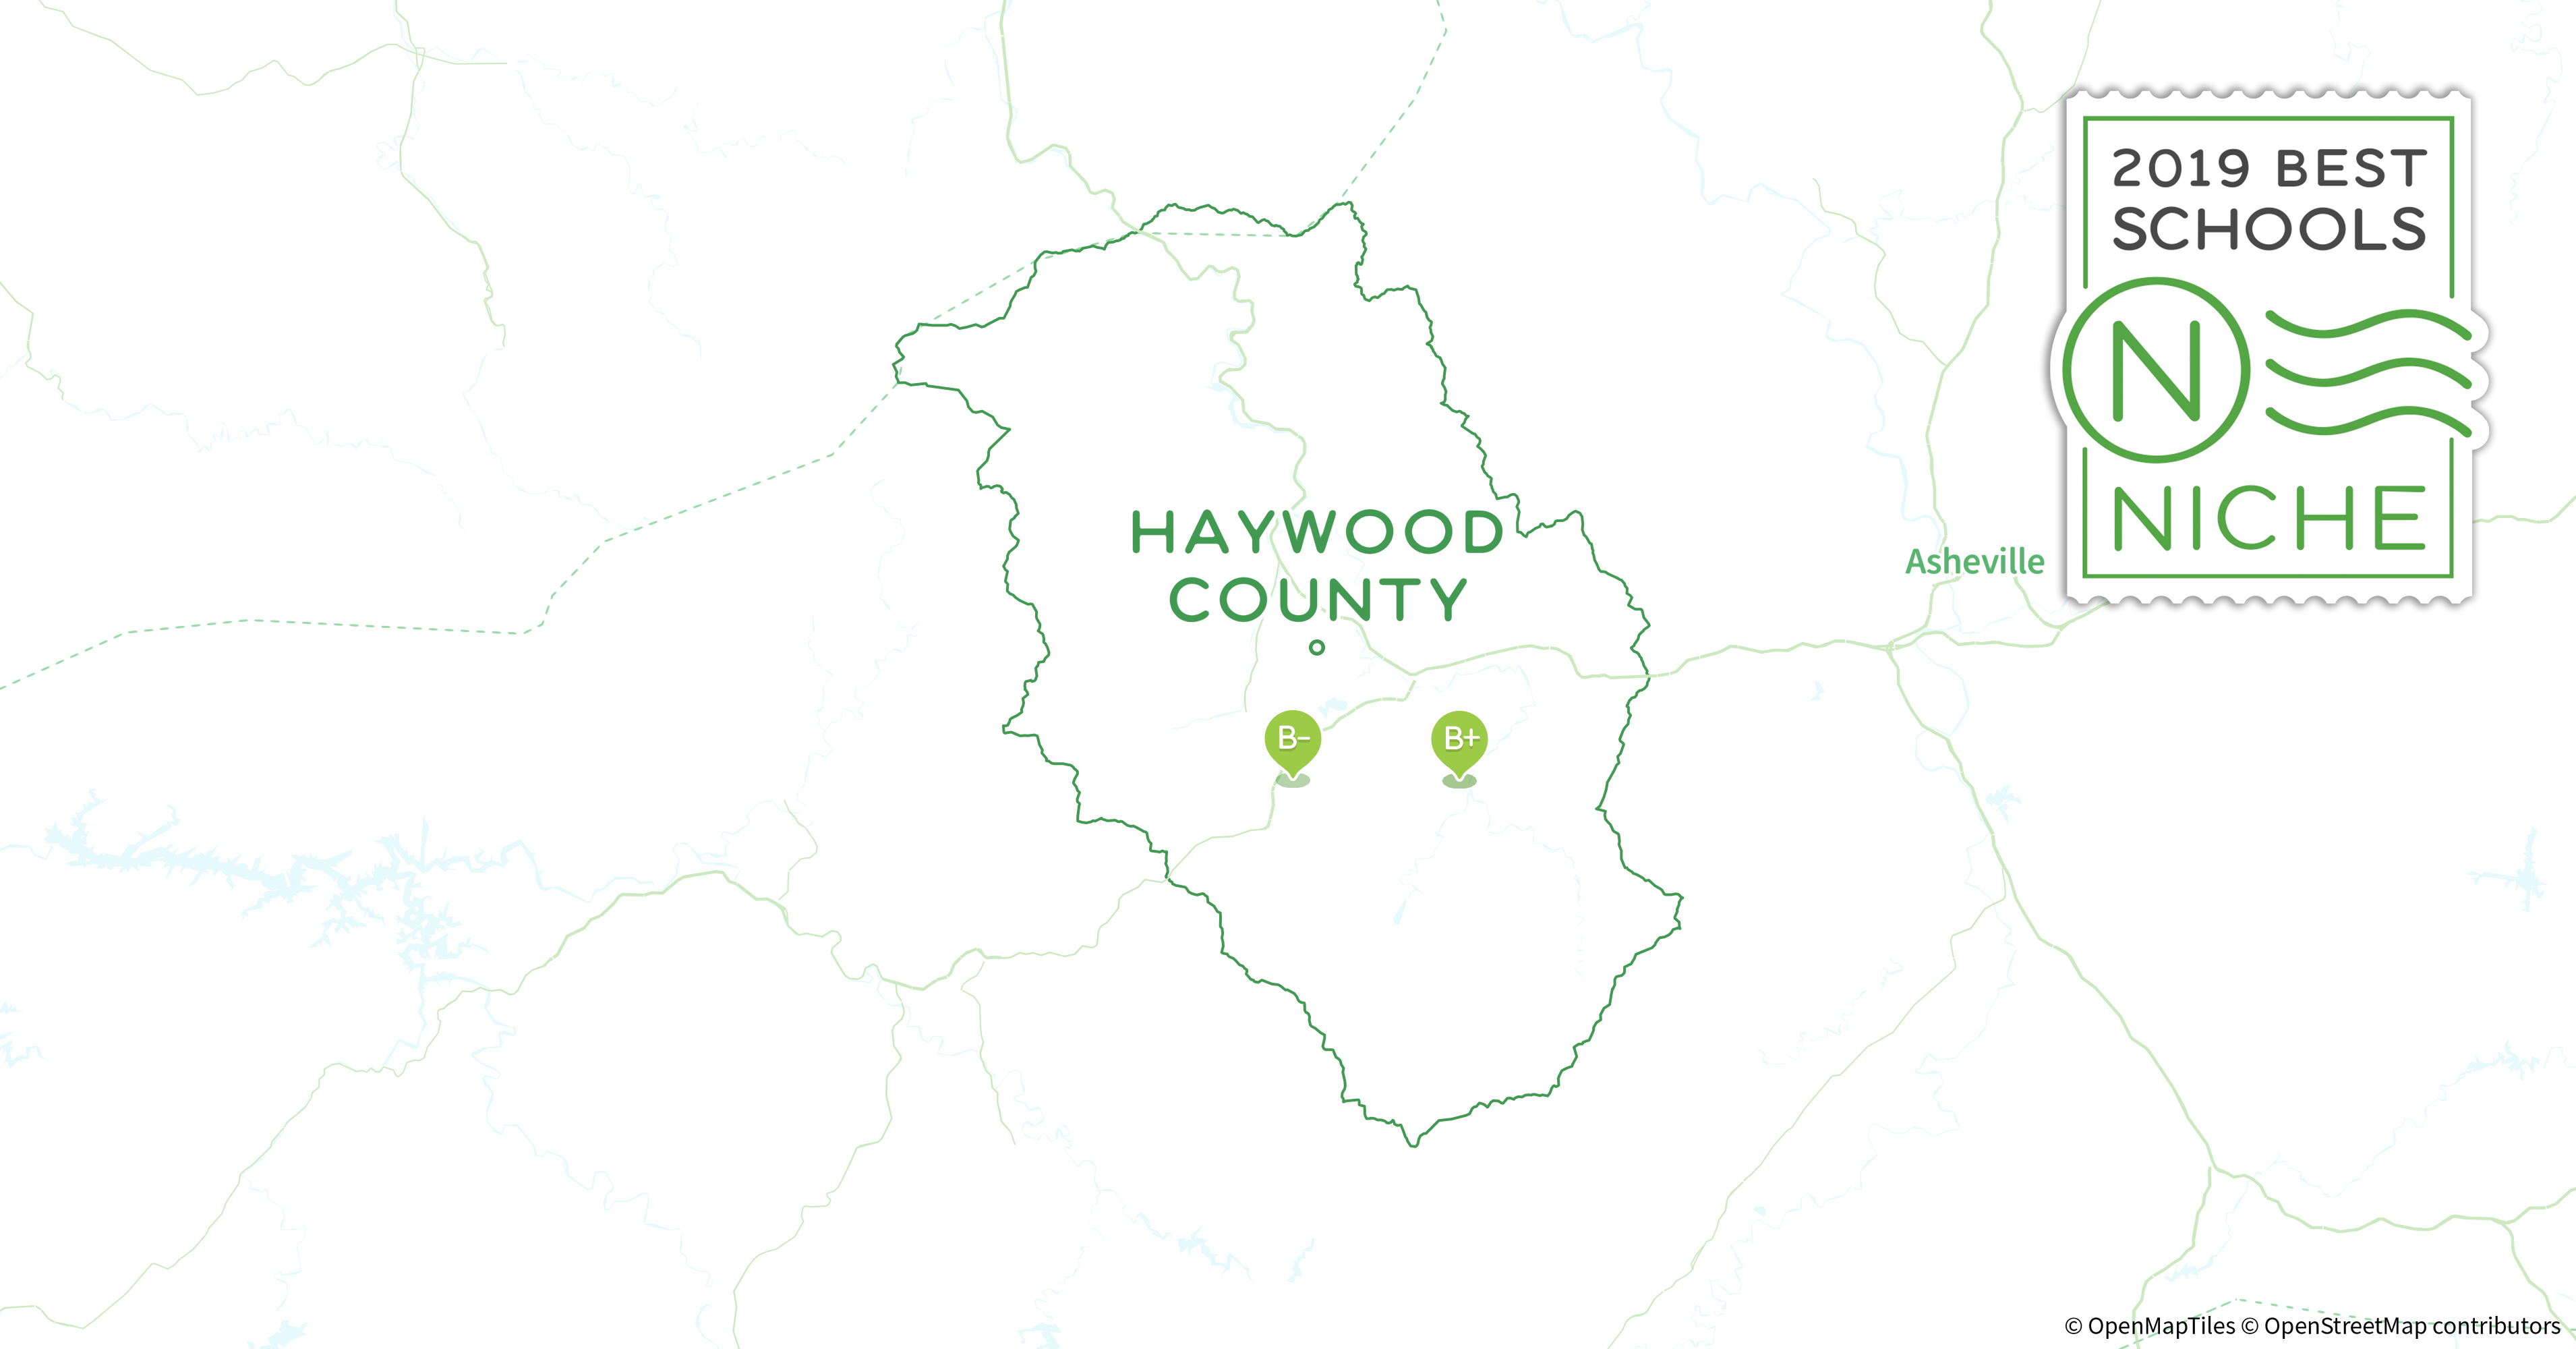 Haywood County Nc Map.2019 Best Public Elementary Schools In Haywood County Nc Niche